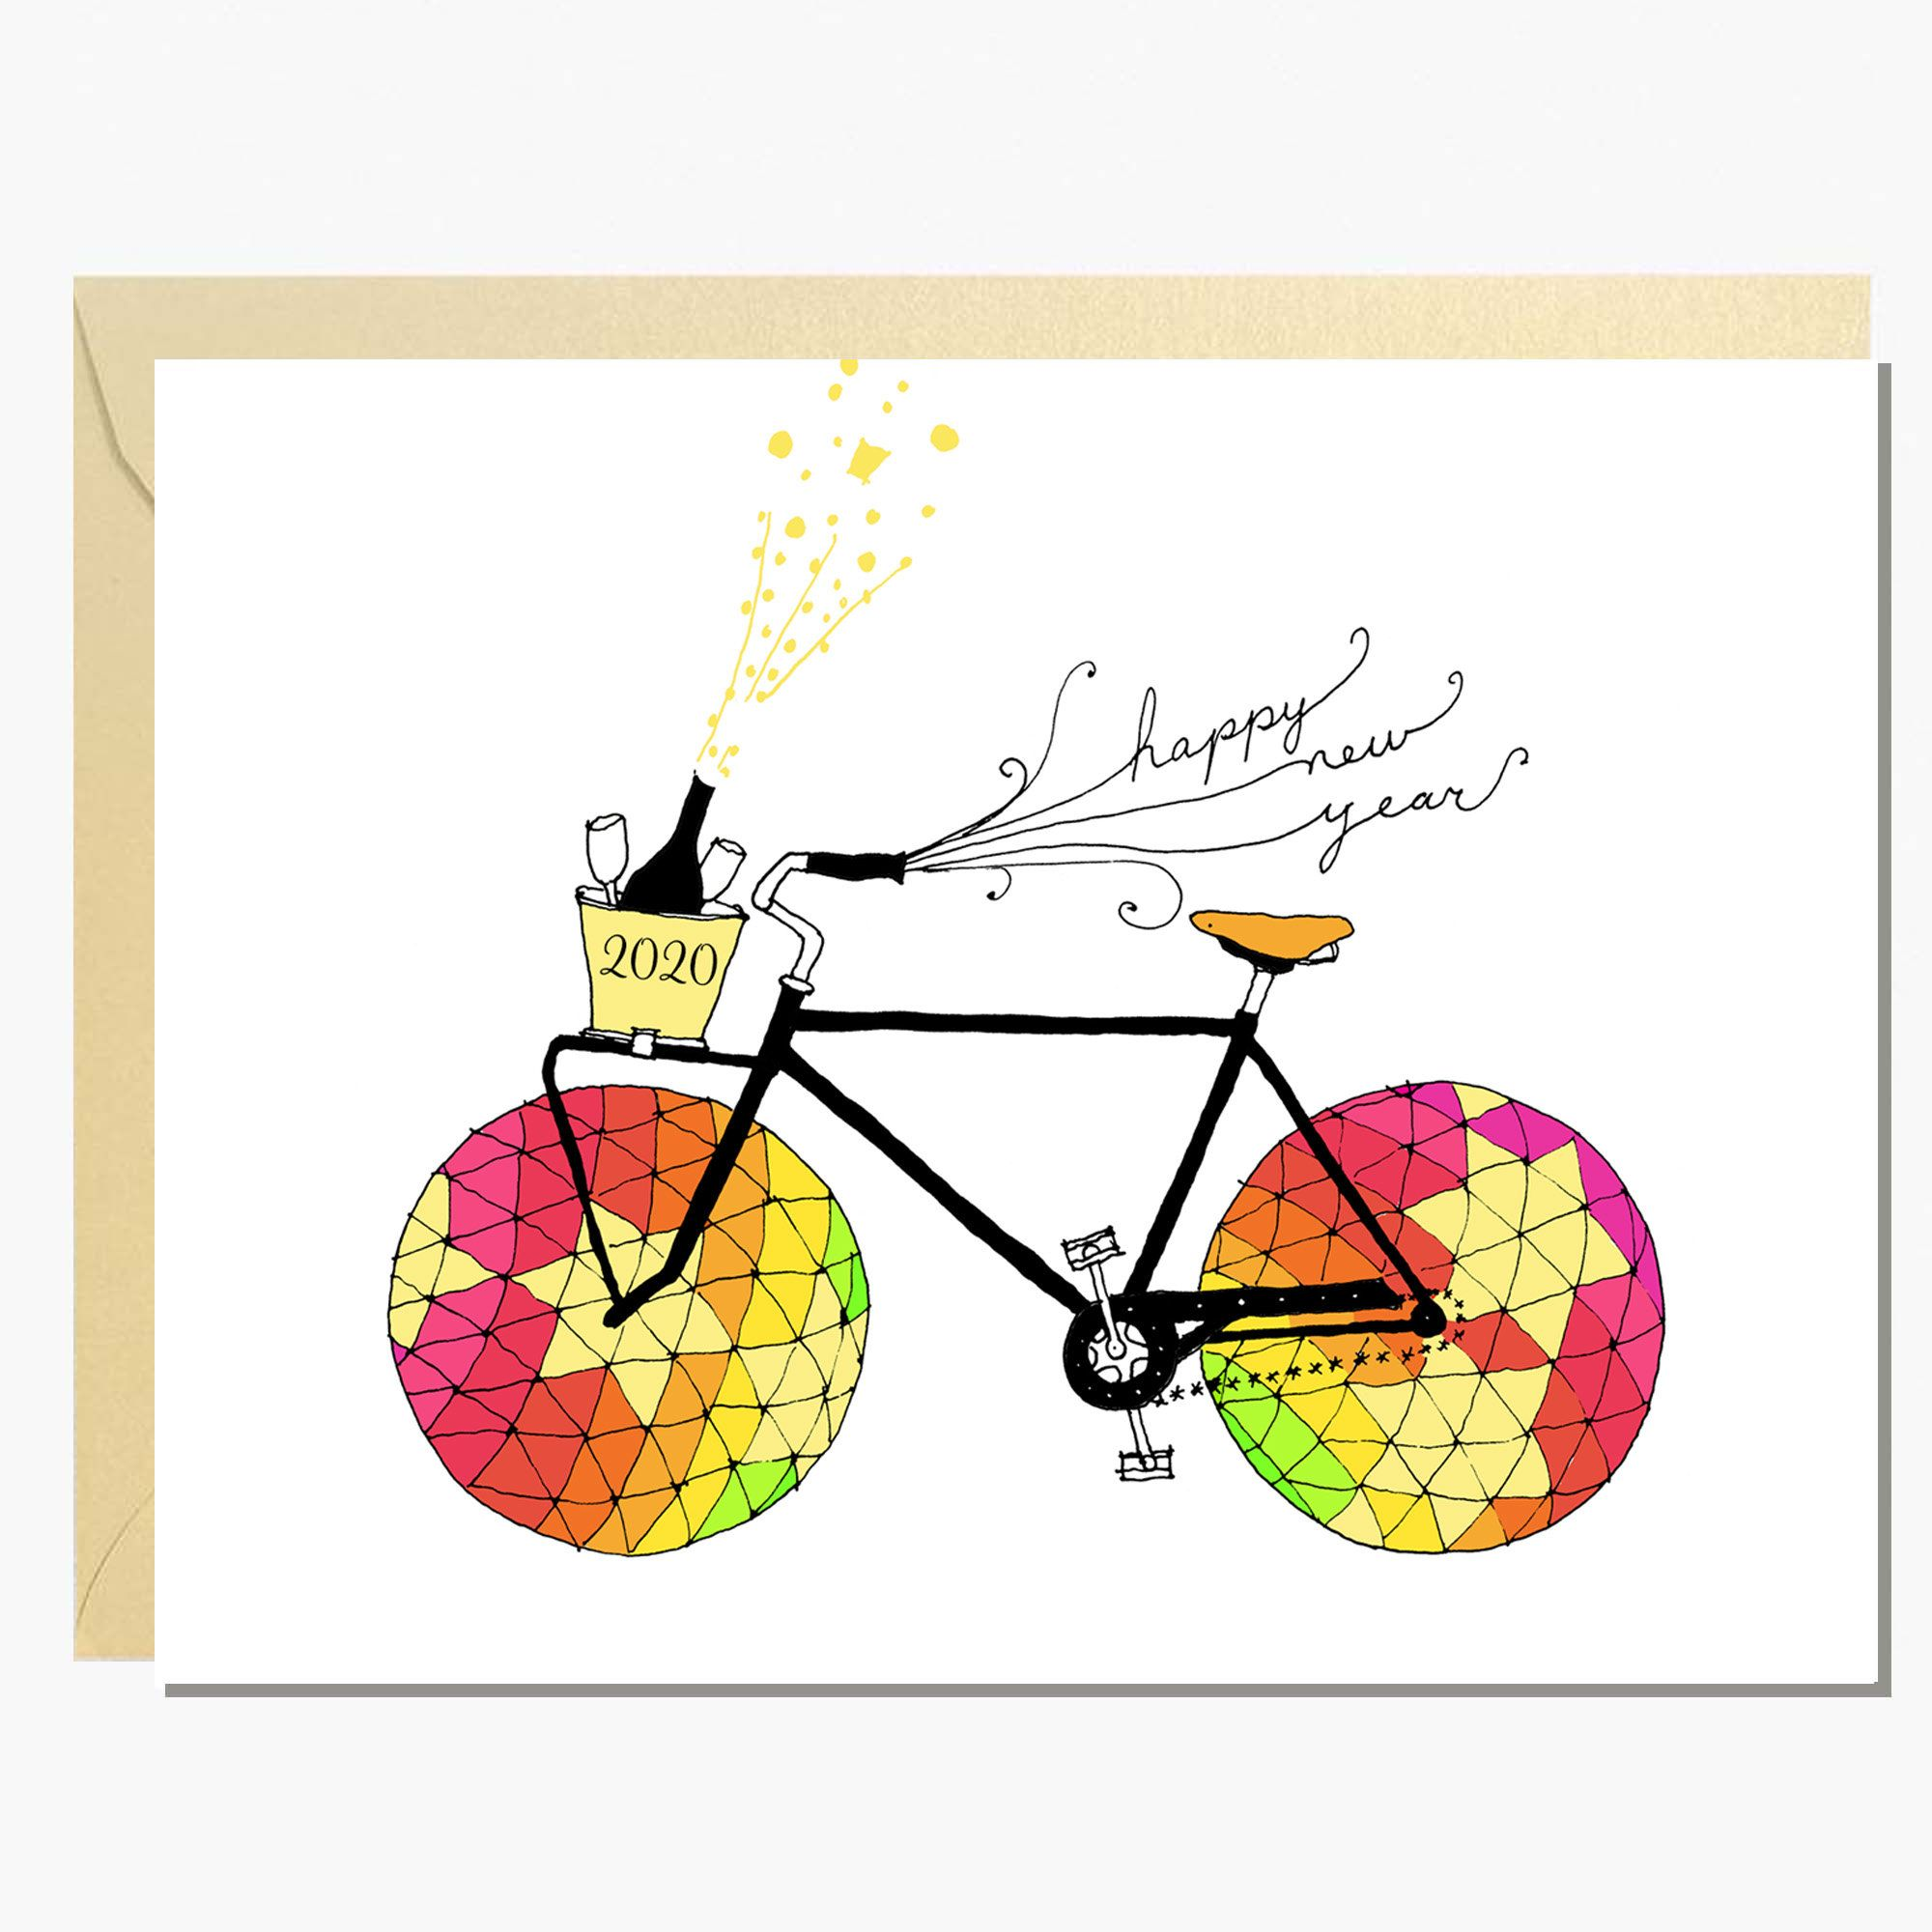 Happy New Year Bike Card 2020 Etsy Bike card, Seasons